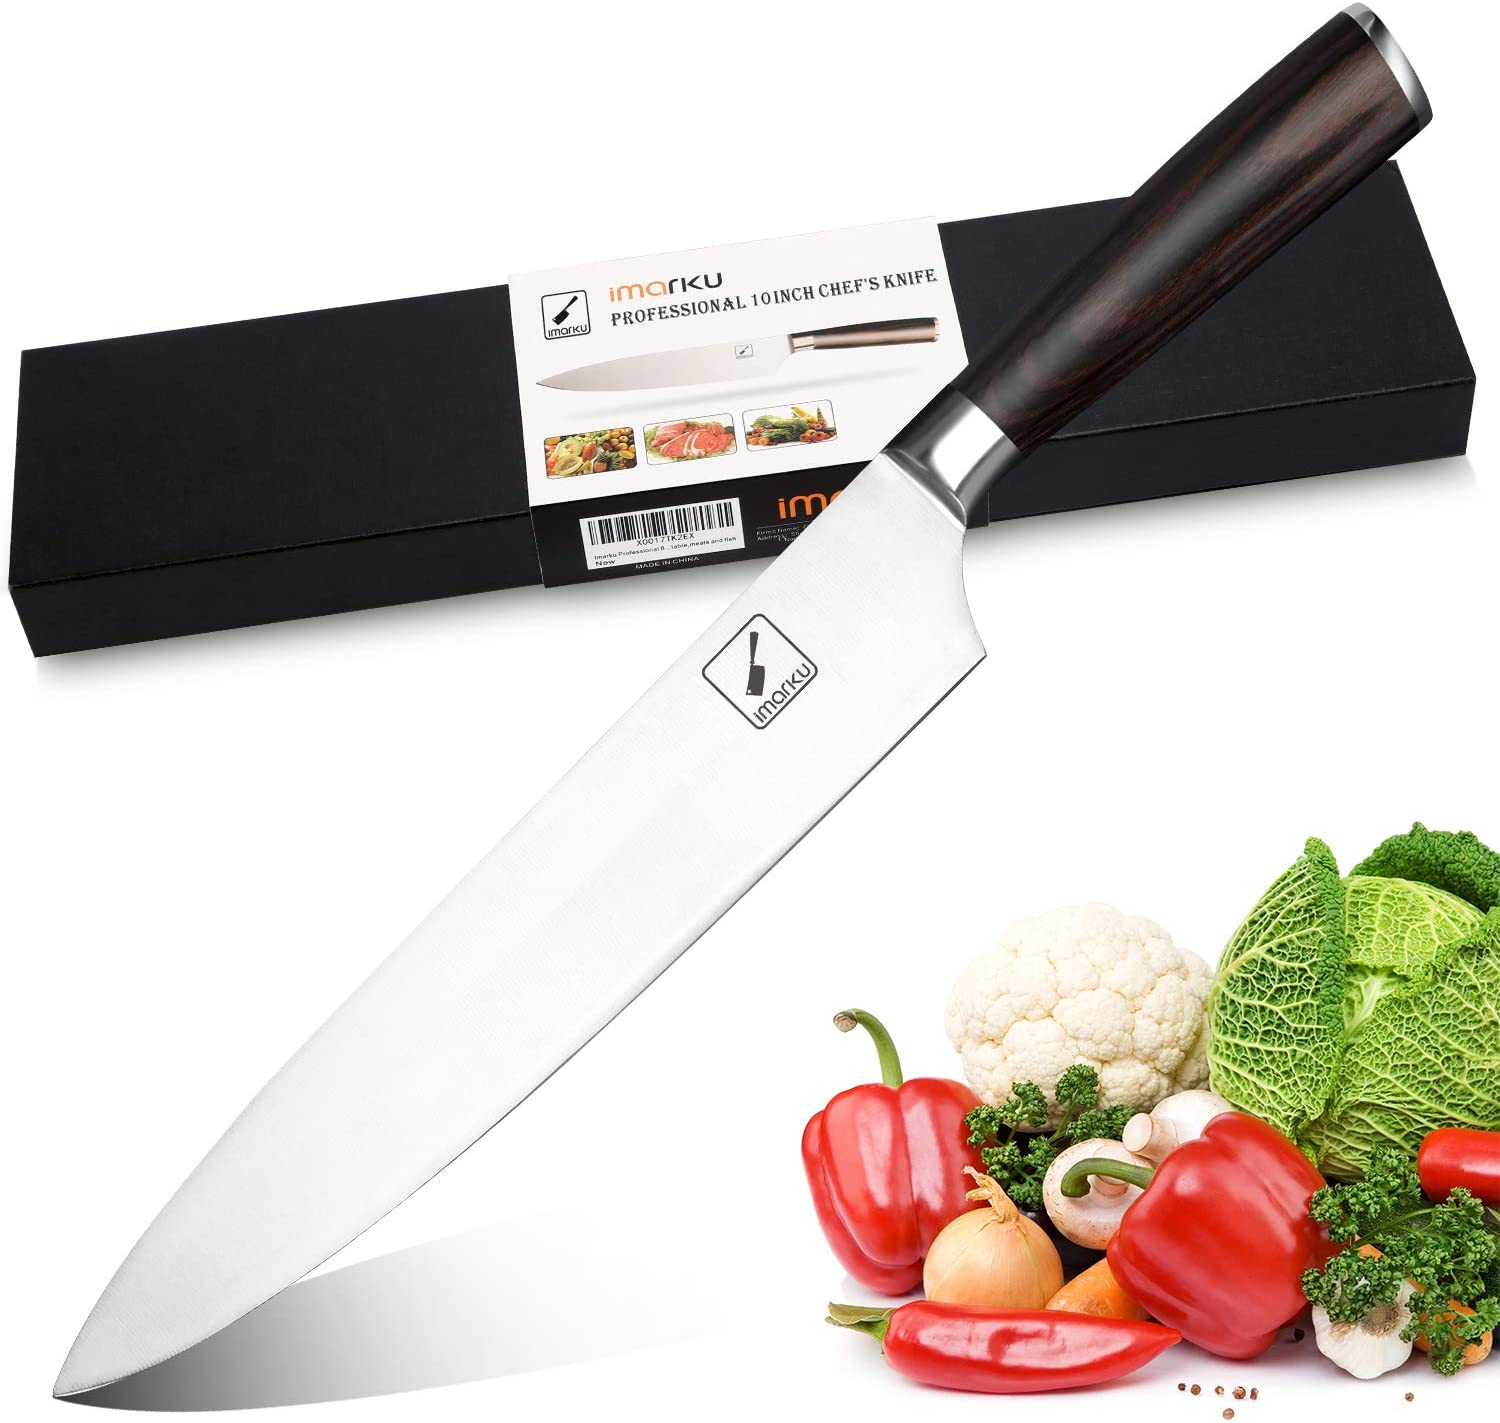 imarku Chef Knife 10 inch, High-Carbon German Stainless Steel Pro Kitchen Knife with Ergonomic Handle and Gift Box, Chef's Knives for Professional Use